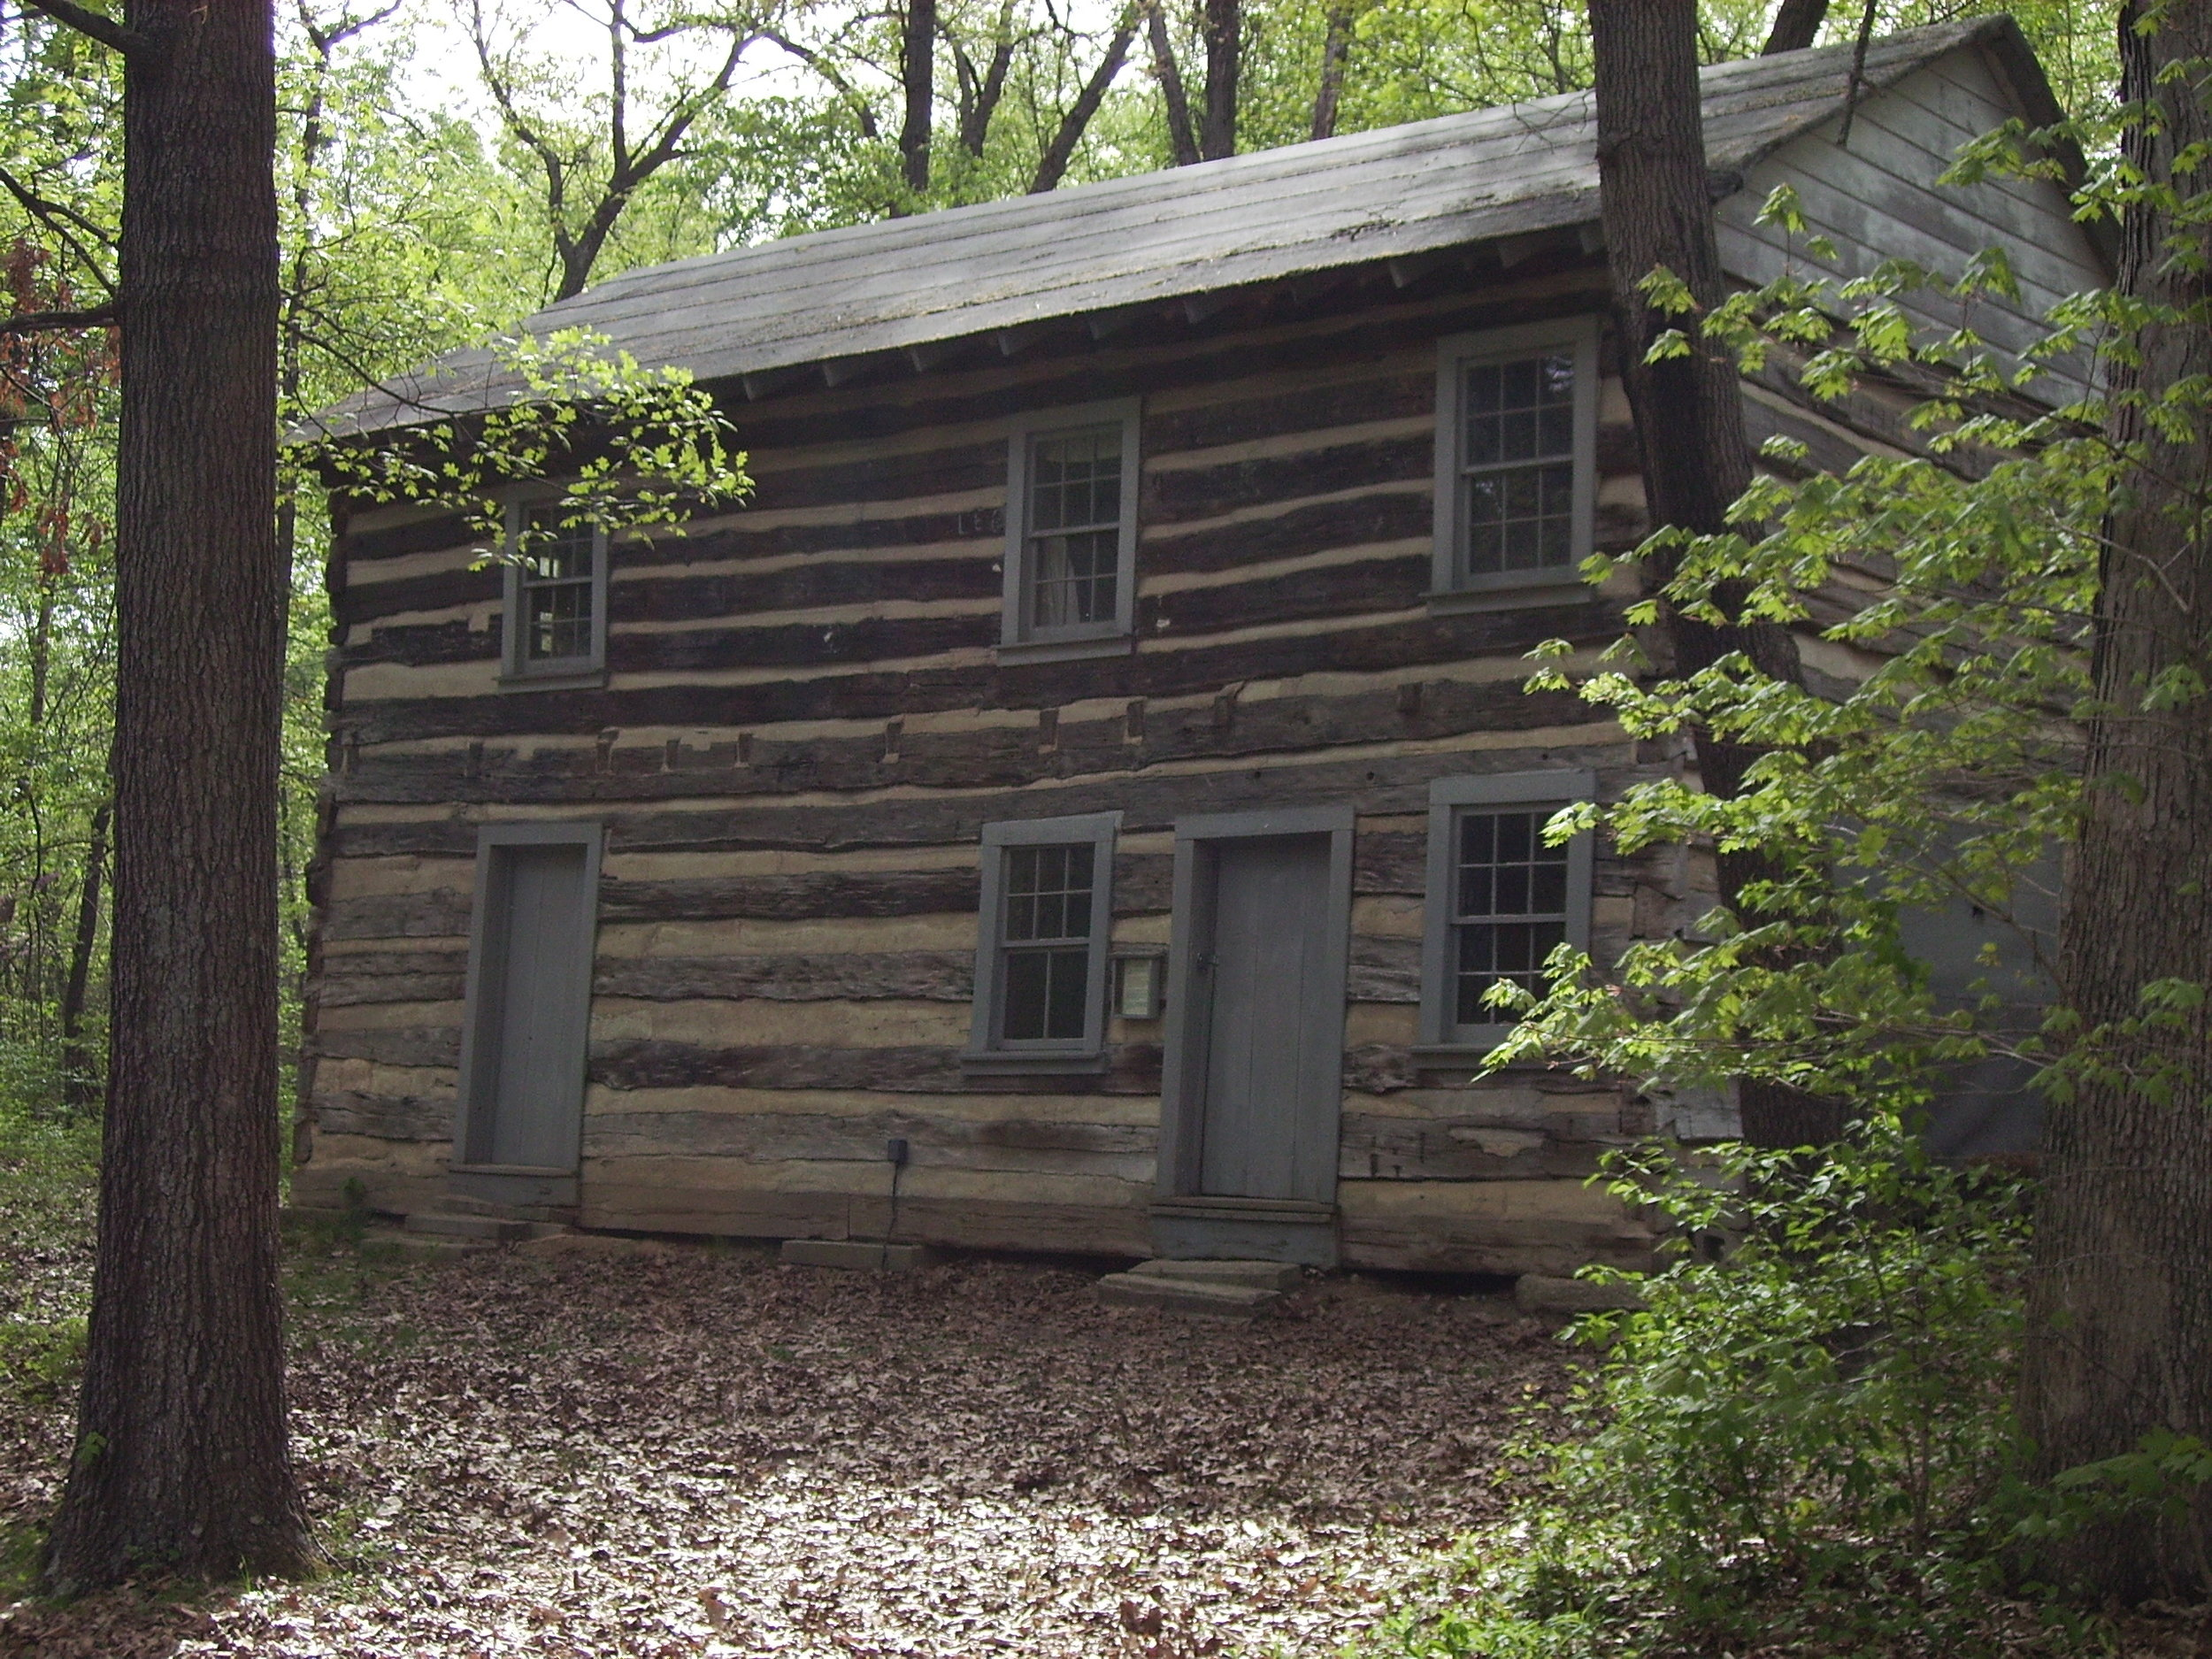 Jacob's Well Stagecoach Inn - This inn was built in 1828 part of a stagecoach stop located on the old Egyptian Trail which ran from Rockford, Illinois to Cairo, Illinois. It has been said that the famous and not so famous have slept here such as Abe Lincoln and Jesse James. A black and white movie featuring Jesse James was made in the 1920's when the inn was still on the trail.Rudolph Dust (Rudolph died at the age of 100) of Effingham, Illinois said he ate many a meal here as a boy. For five cents the butcher furnished the meat and the innkeeper furnished the vegetables in season and all the beer one could drink. The butcher and innkeeper divided the profit.The original inn had 3 floors, with the upper level being reached by climbing a ladder from the outside. The 3rd floor was not added when it was rebuilt.